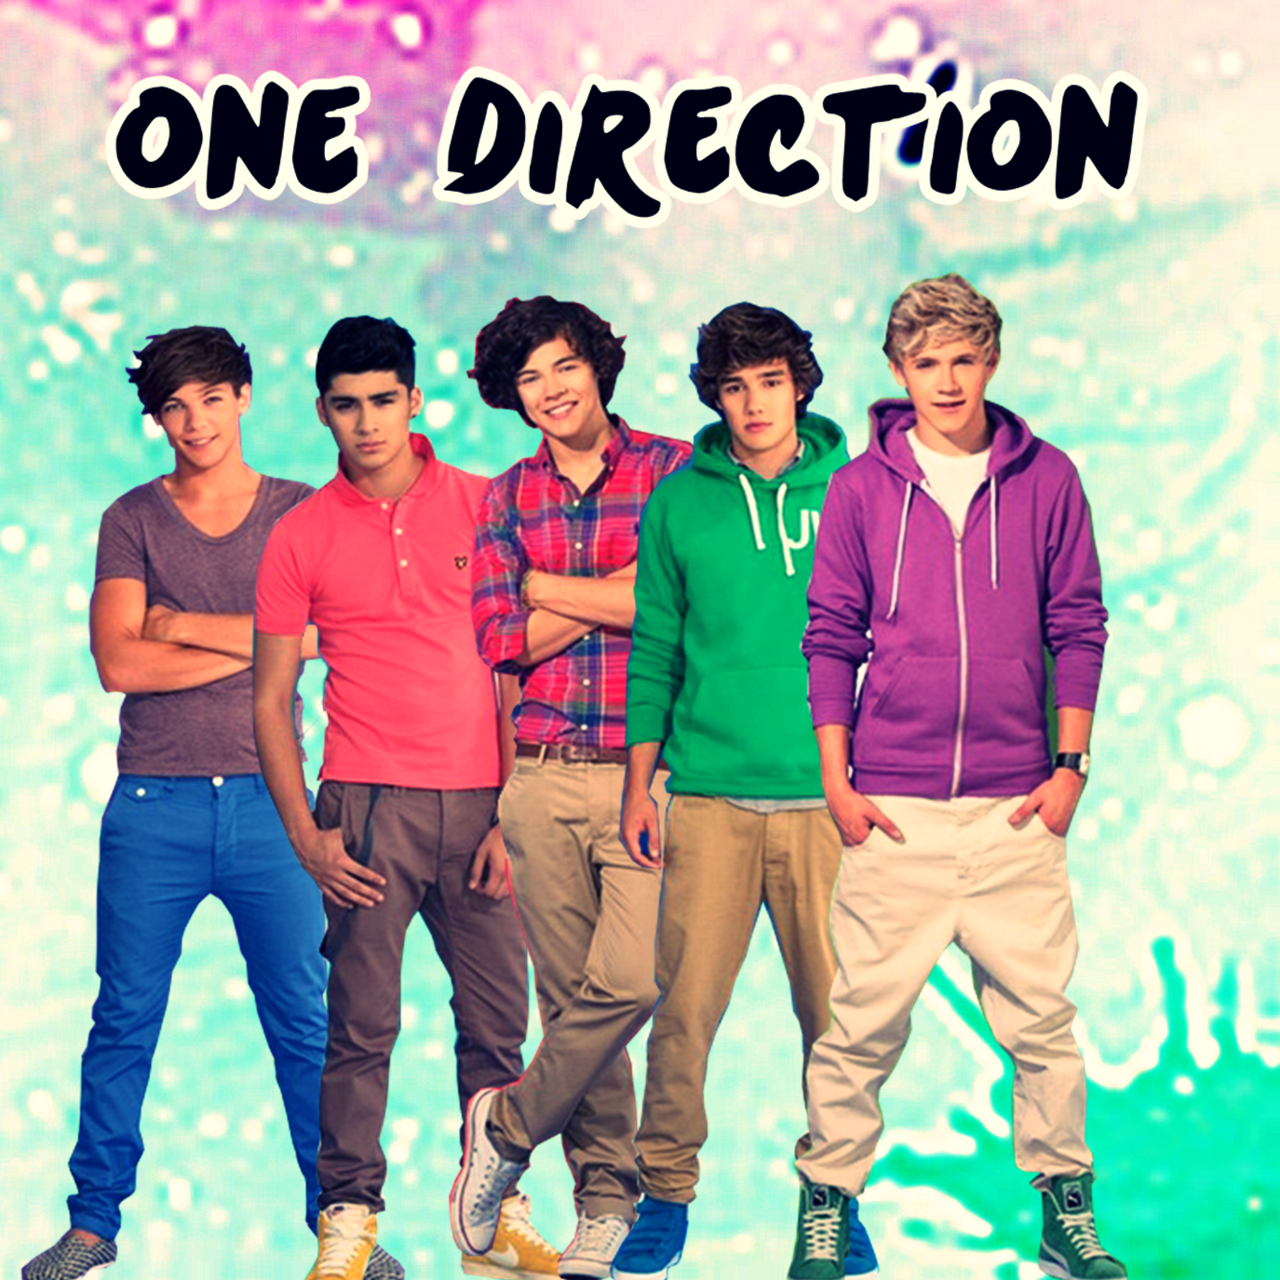 Wallpaper, One Direction (39395928)